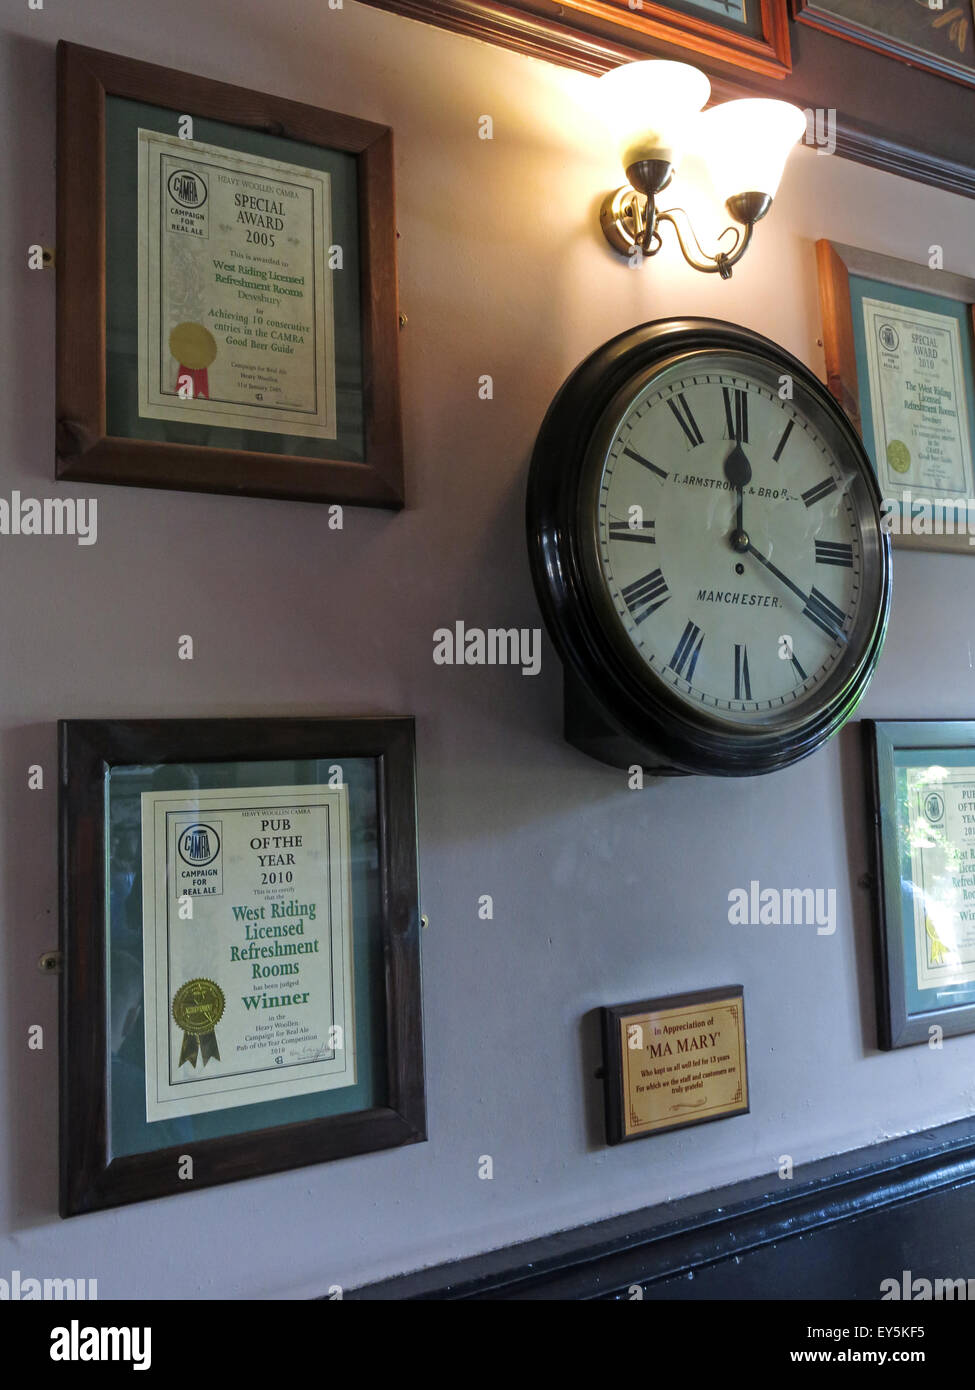 West Riding Pub, Dewsbury Railway Station, West Yorkshire, England, UK - clock & CAMRA certificates - Stock Image